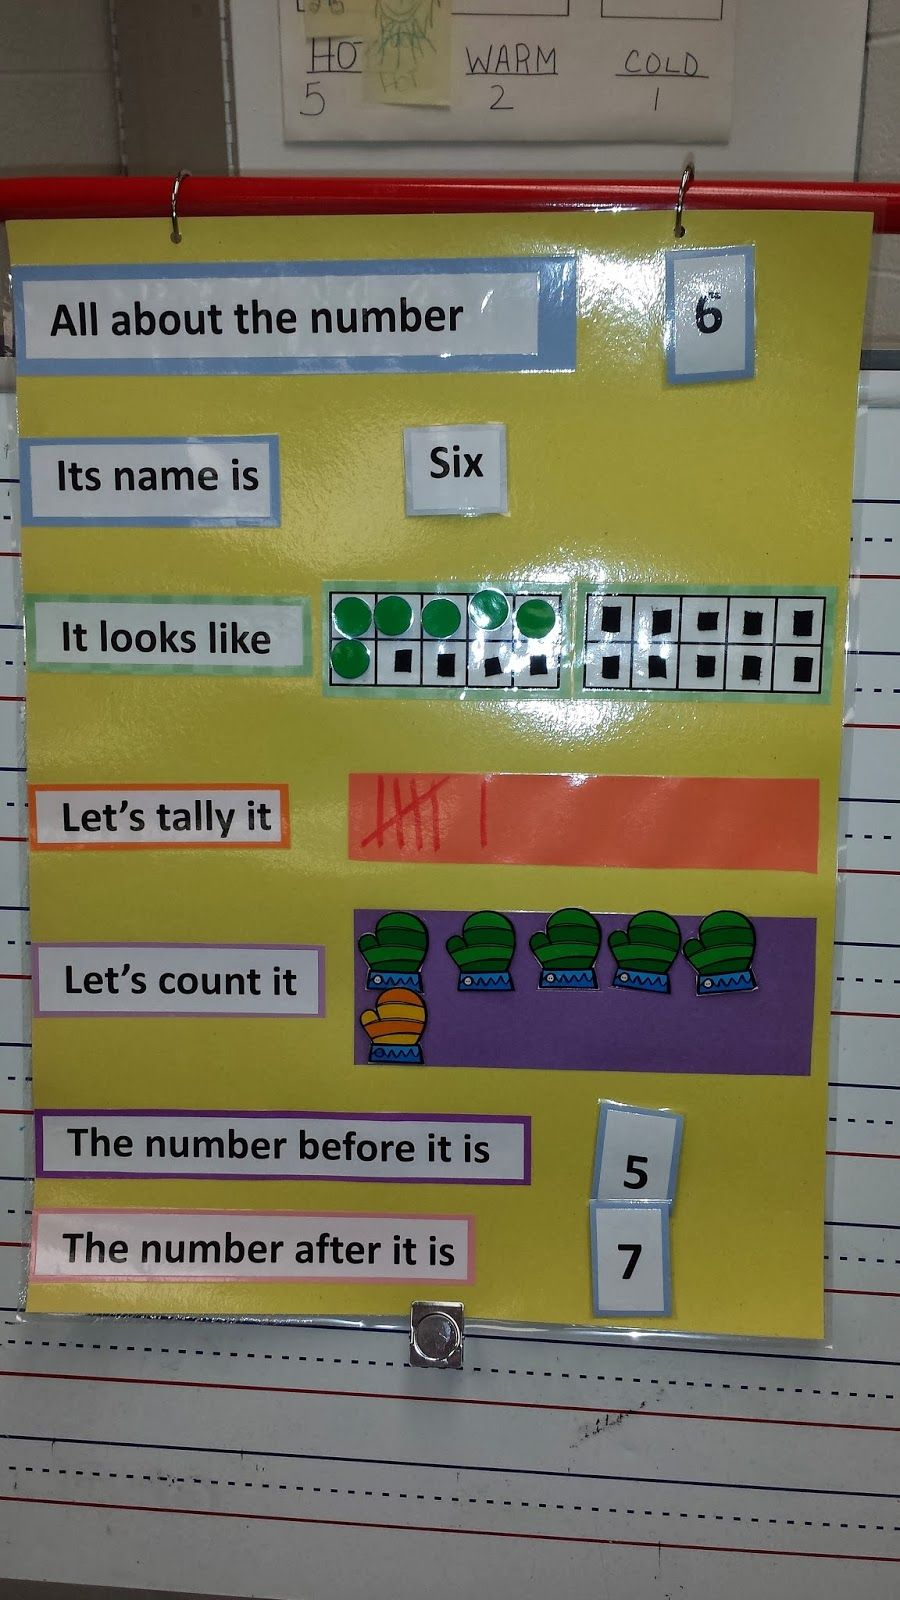 All about numbers | Sentence structure, Word sentences and Sentences